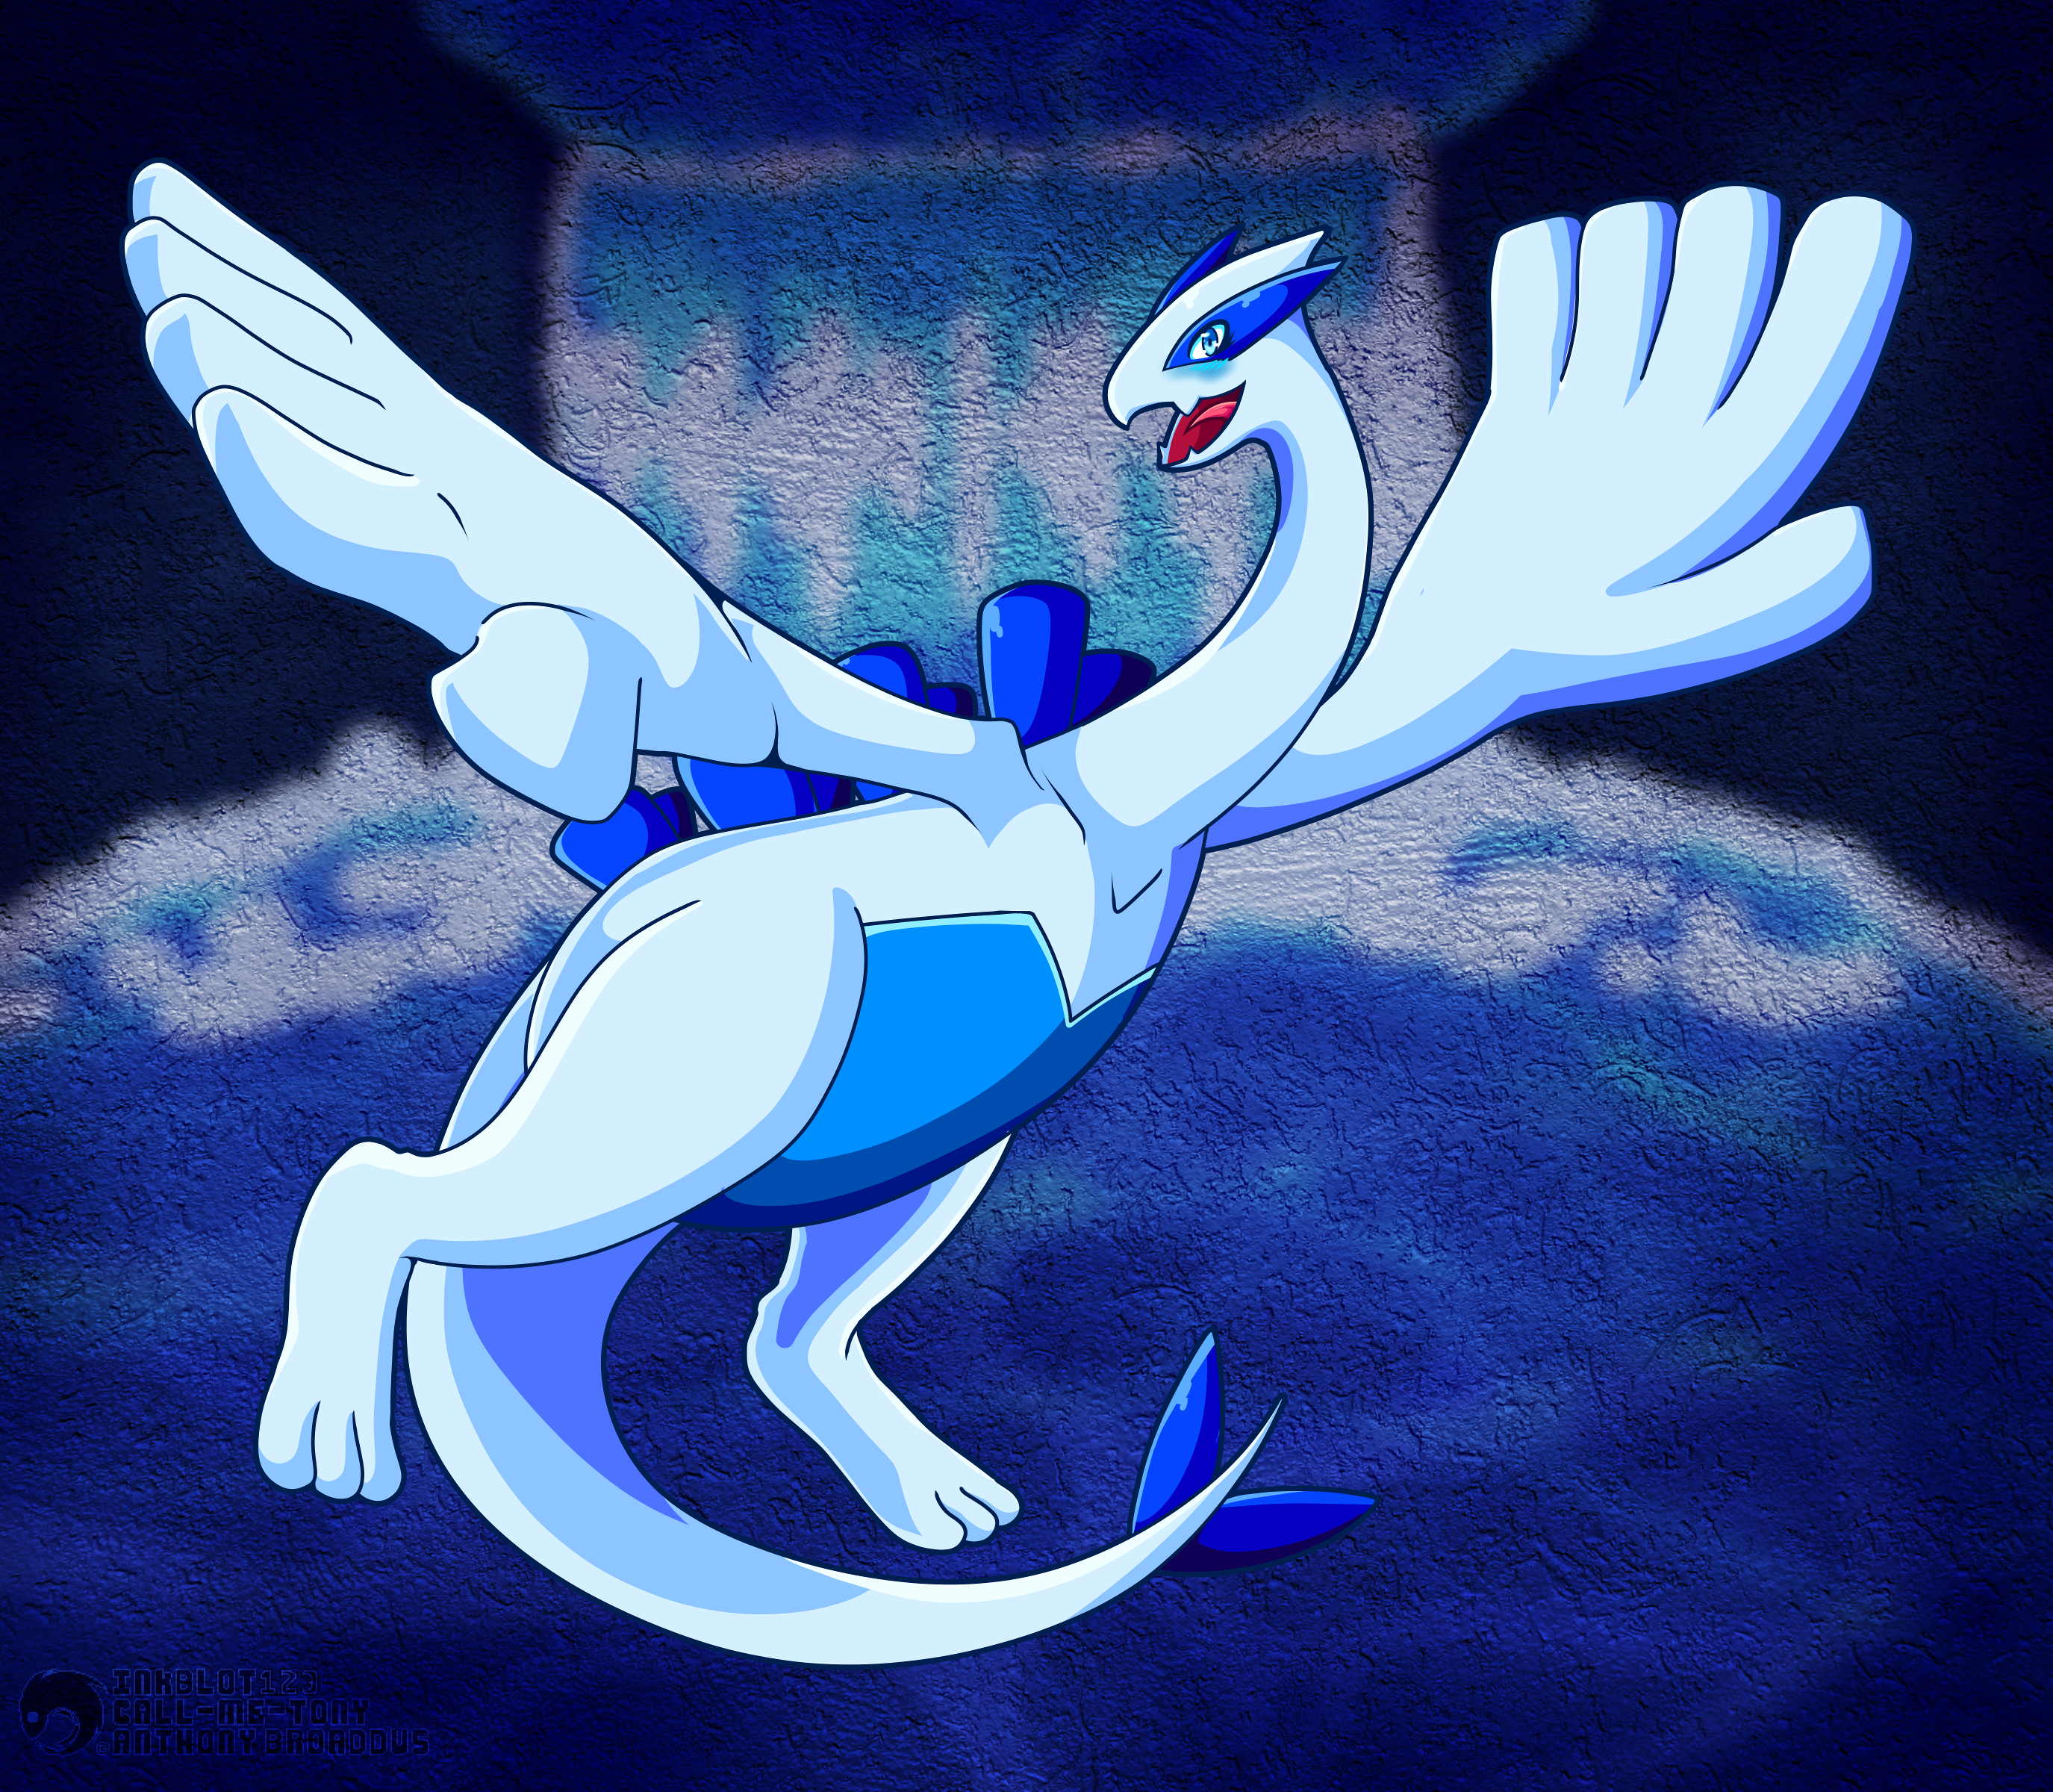 Lugia (Pokémon) - Bulbapedia, the community-driven Pokémon ...